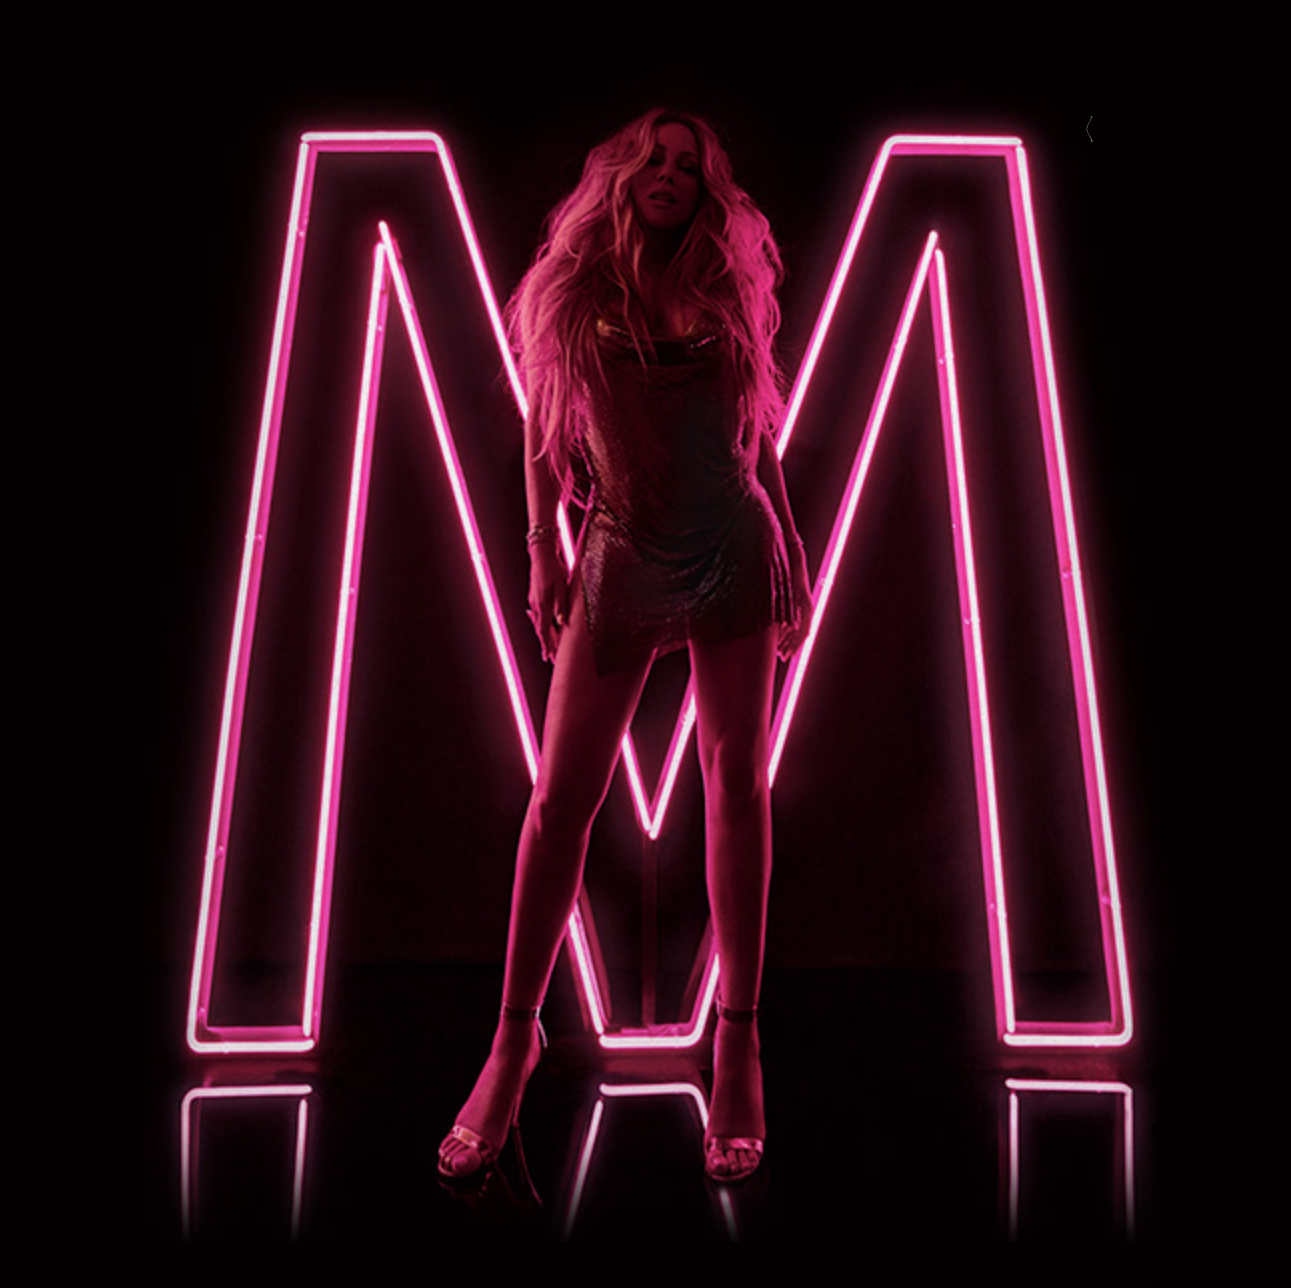 A slow jam that adds a great texture to the album - - Mariah Carey